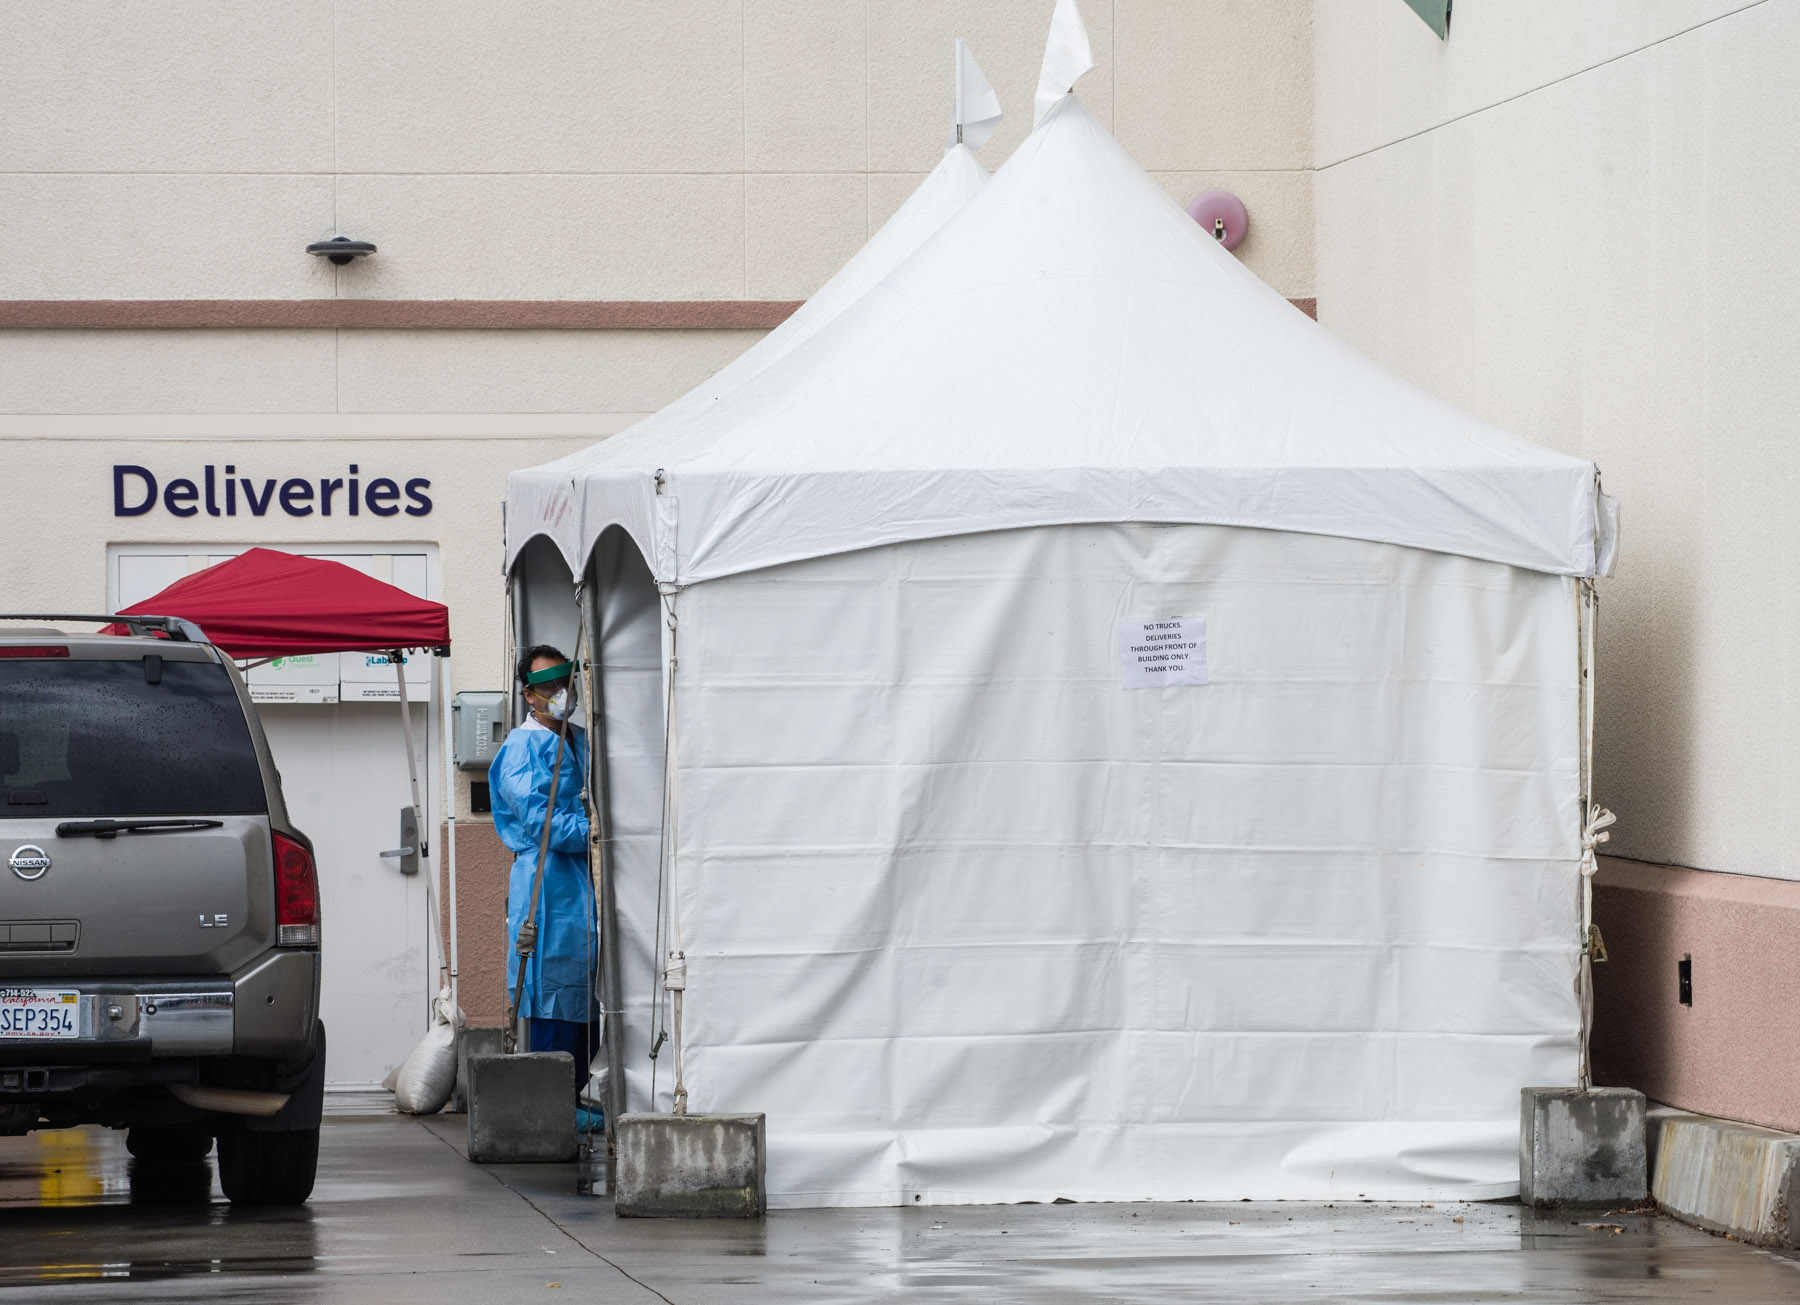 Long Beach sees 3 new coronavirus cases, bringing total to 8 ...